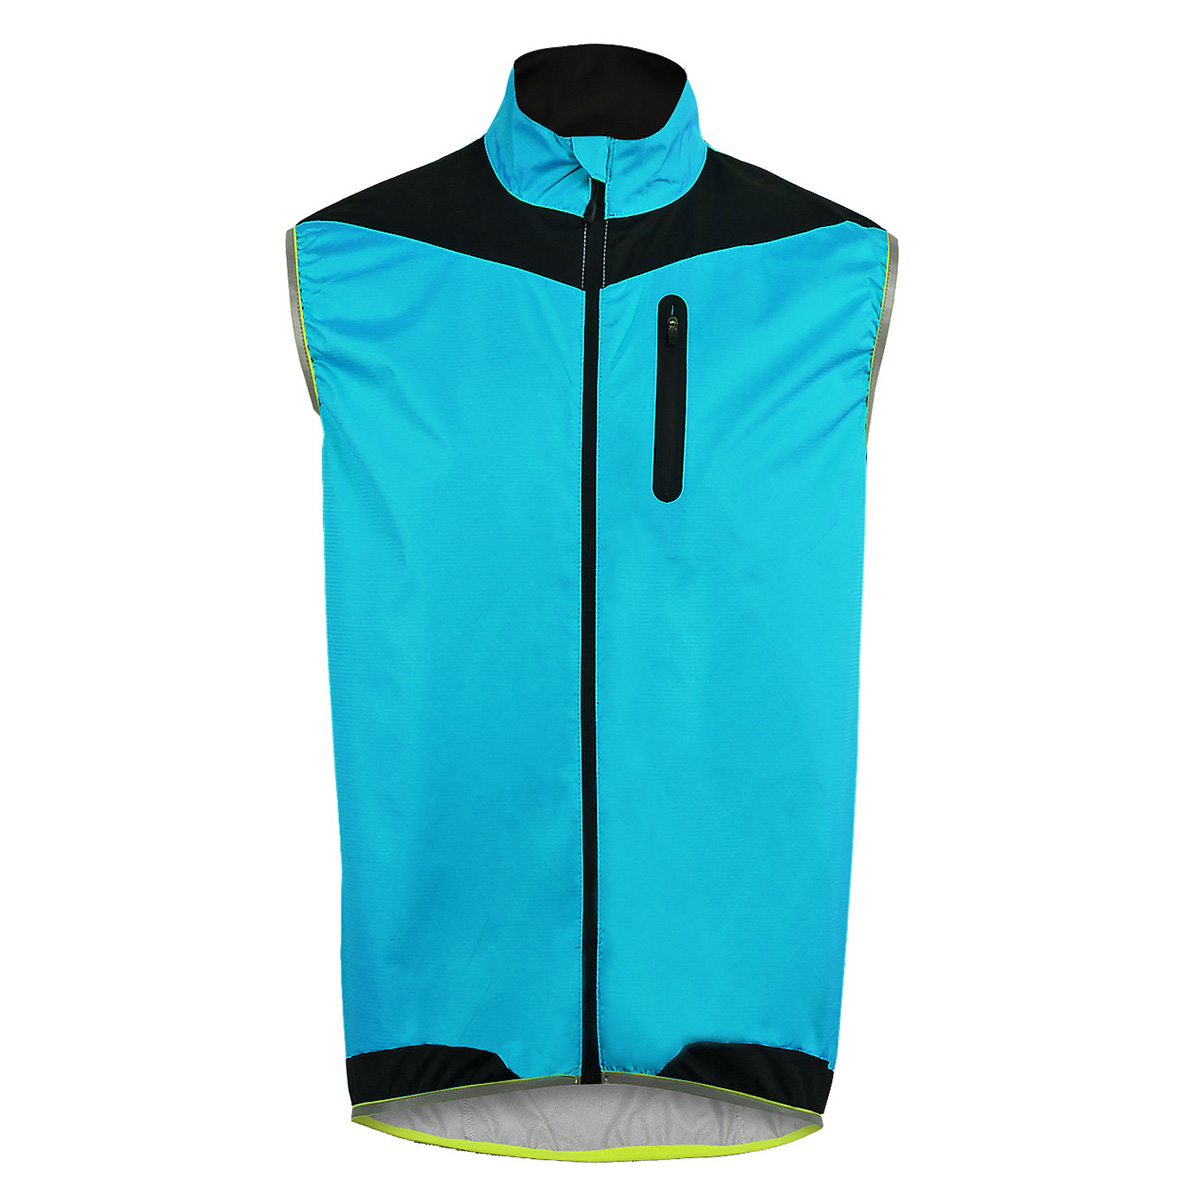 Men Windproof Cycling Vest Sleeveless Gilet Bike Waistcoat Reflective Top Jacket